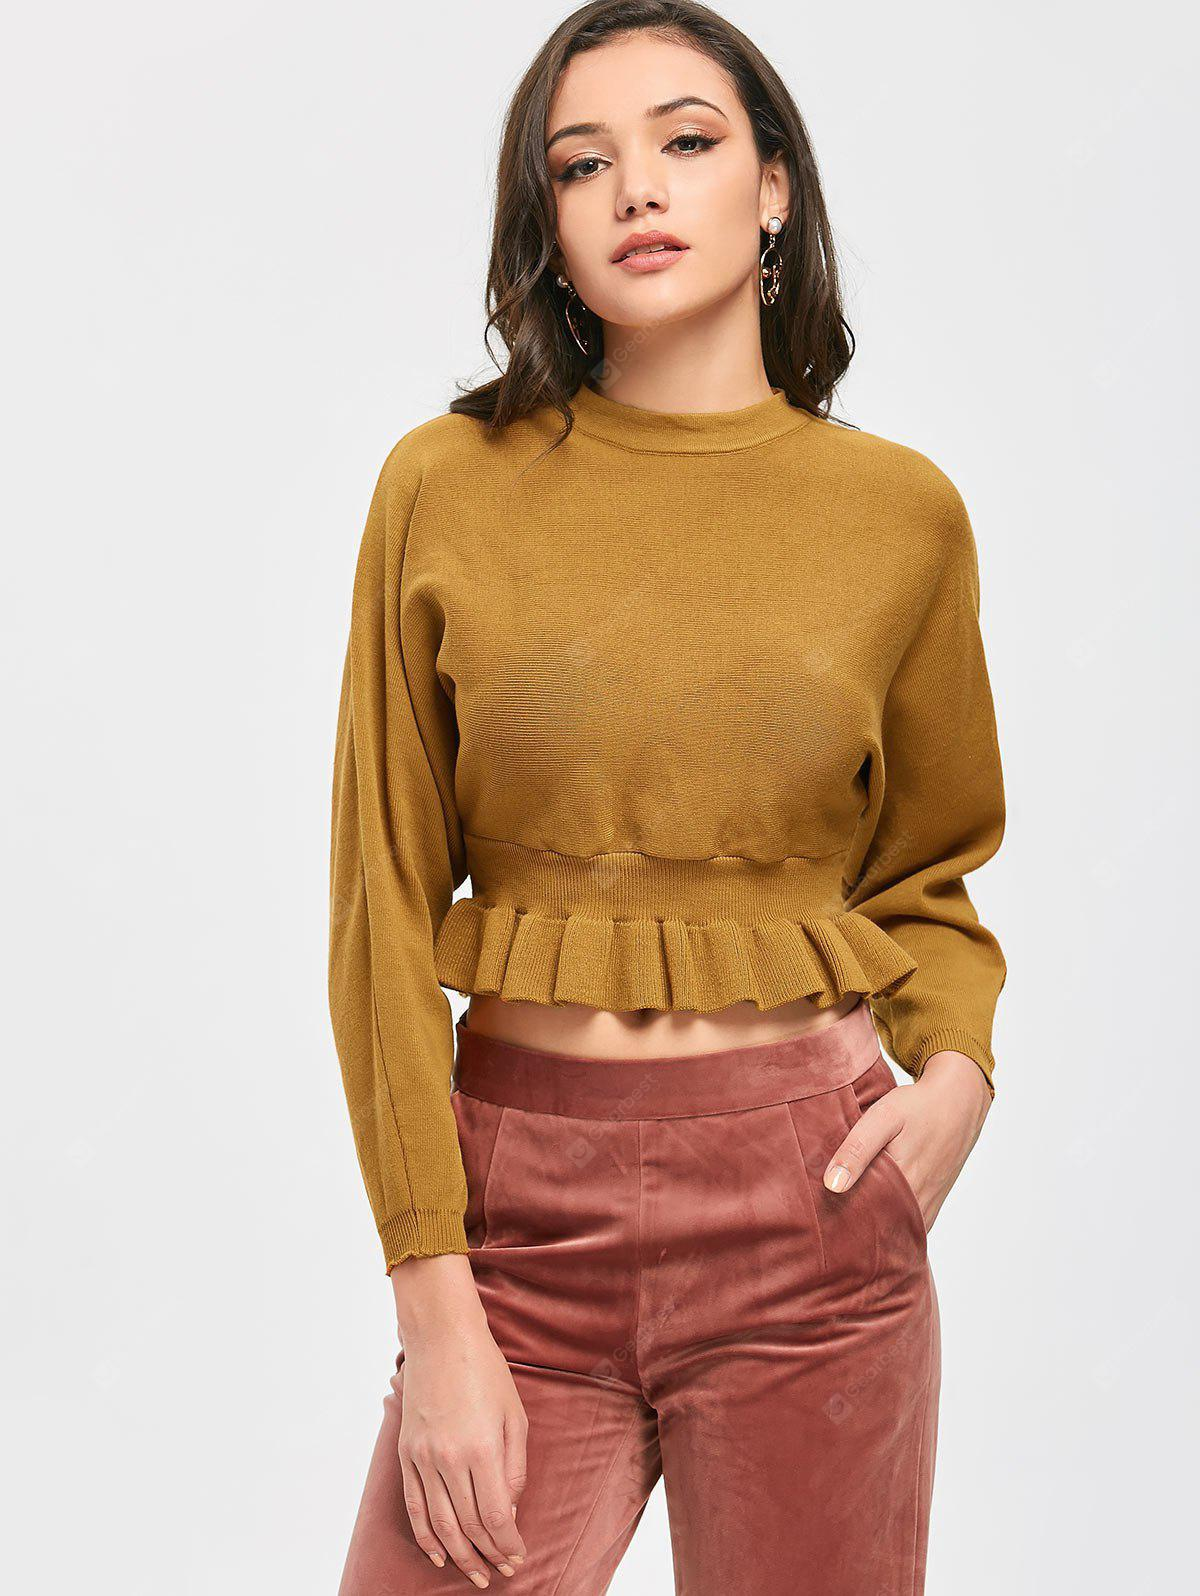 Ruffle Hem Crop Knit Top